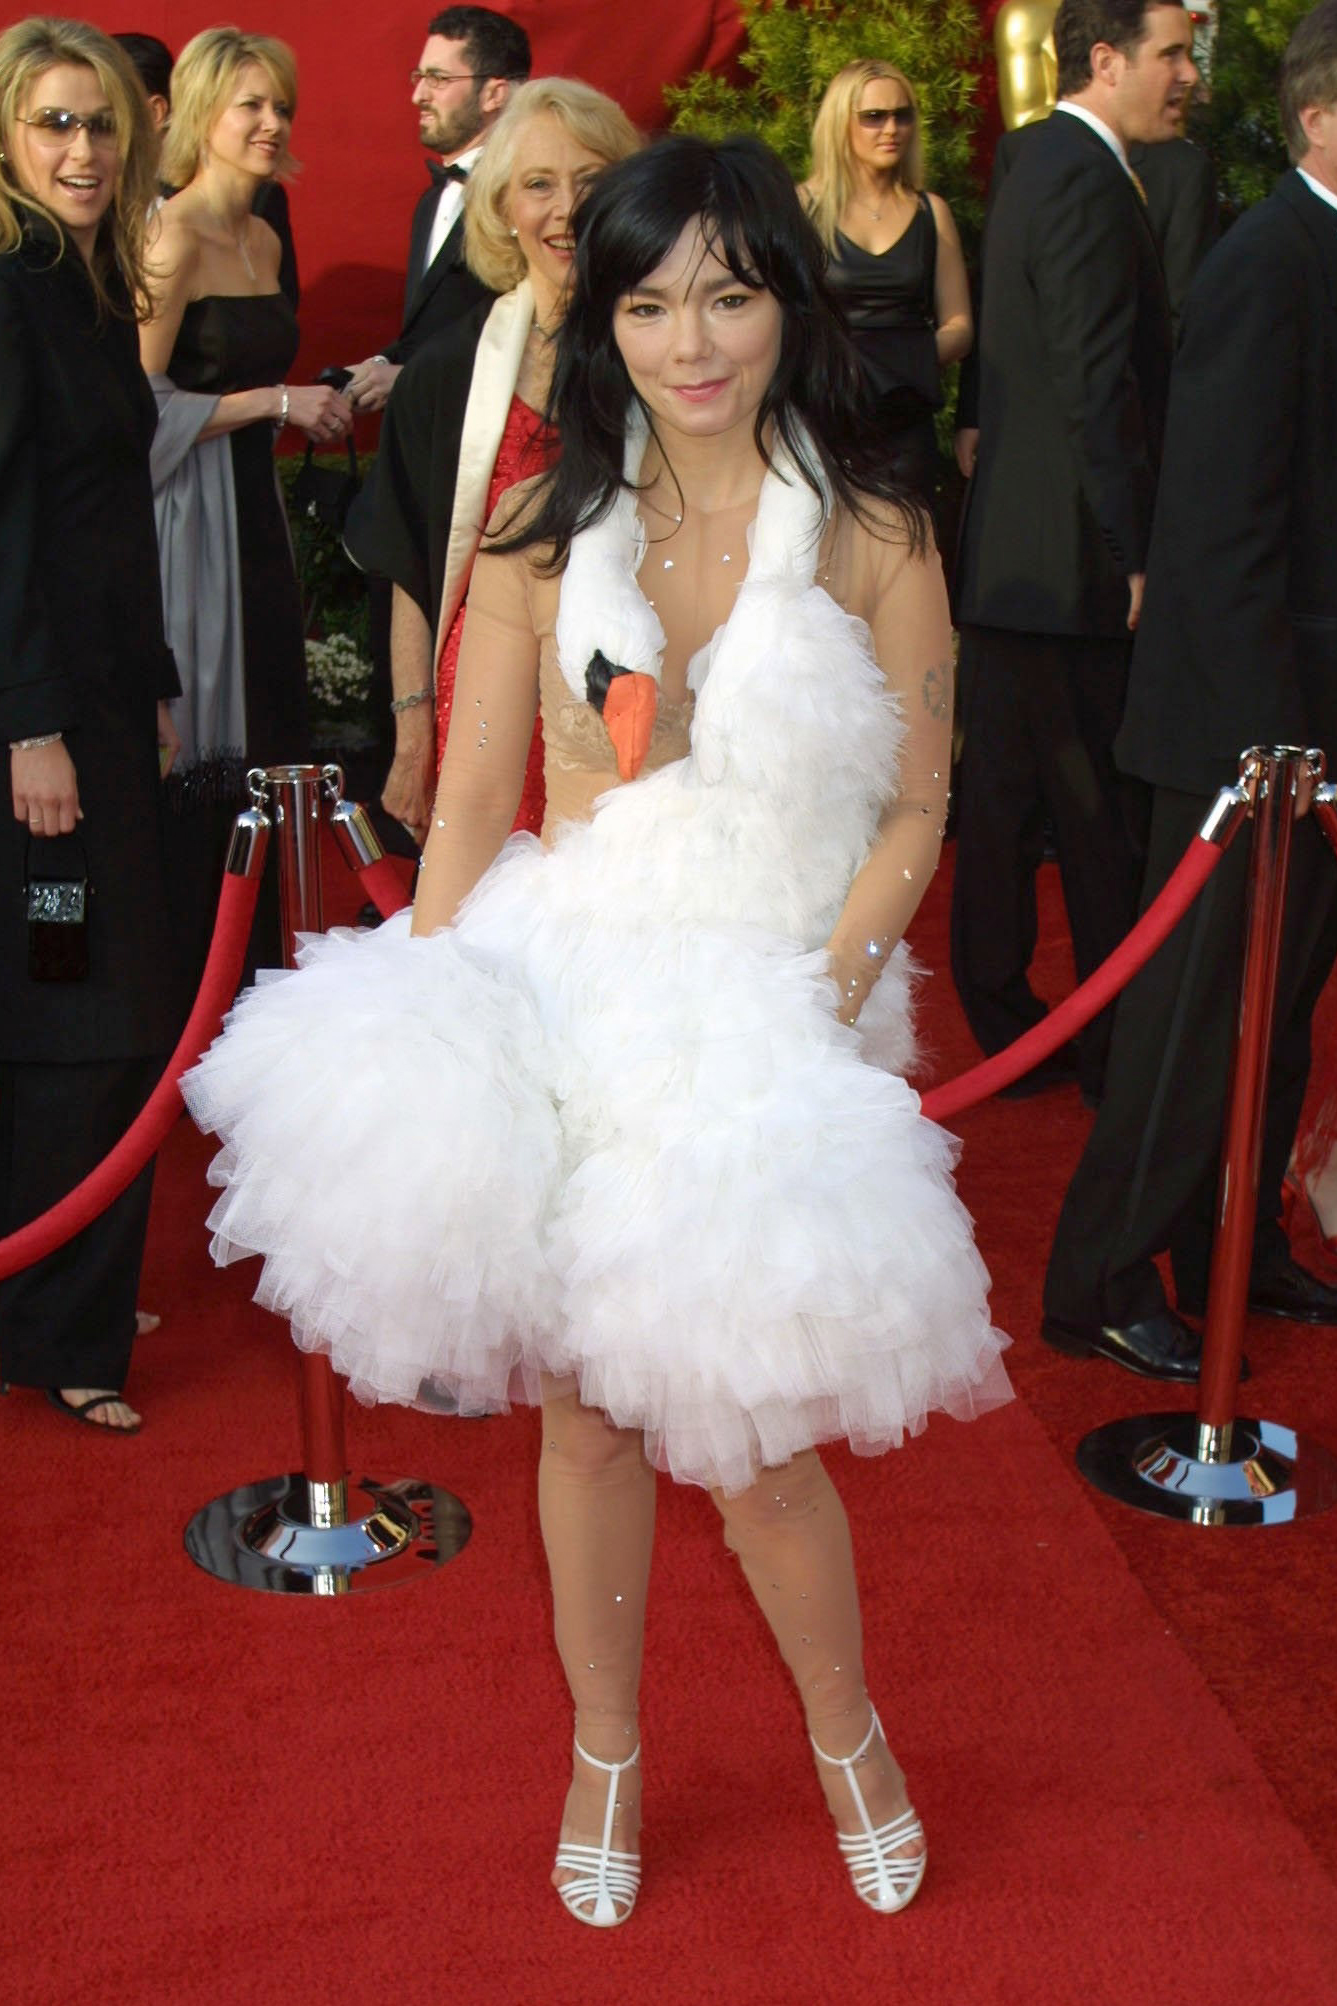 36 most scandalous oscars dresses of all time best and worst 36 most scandalous oscars dresses of all time best and worst gowns at the academy awards junglespirit Image collections